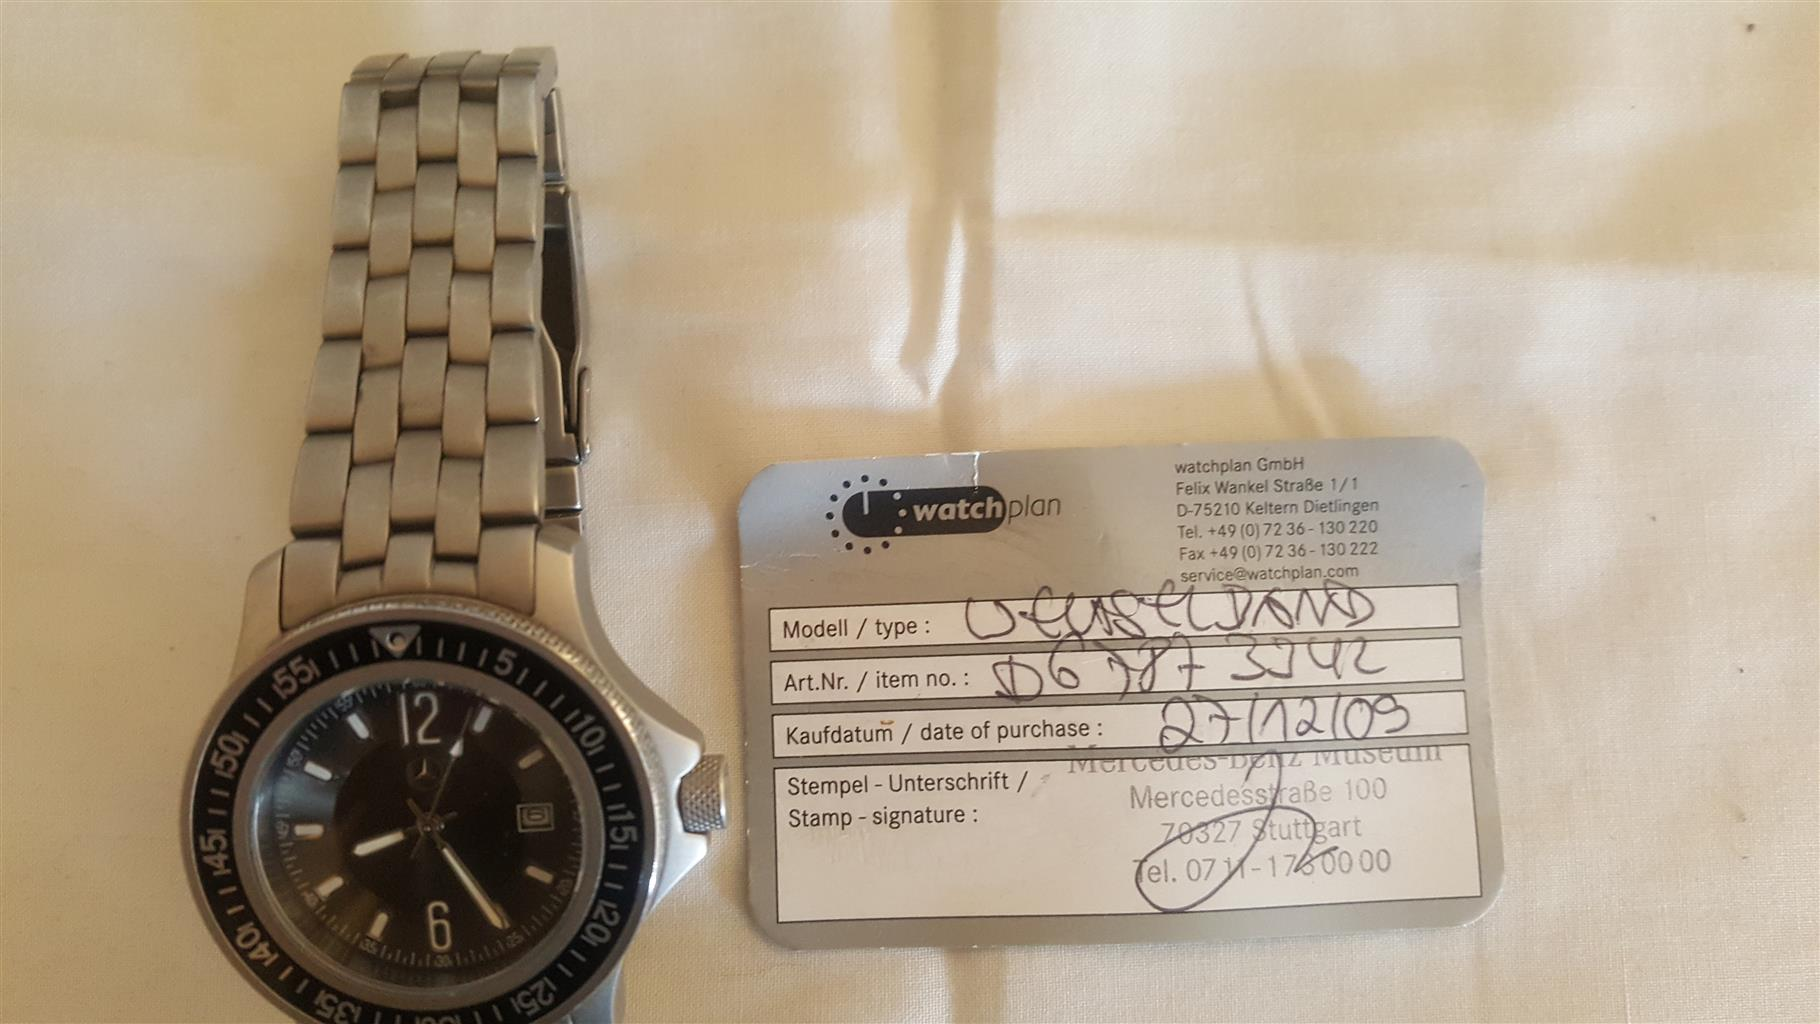 Original Mercedes Benz watch in casing with certificate